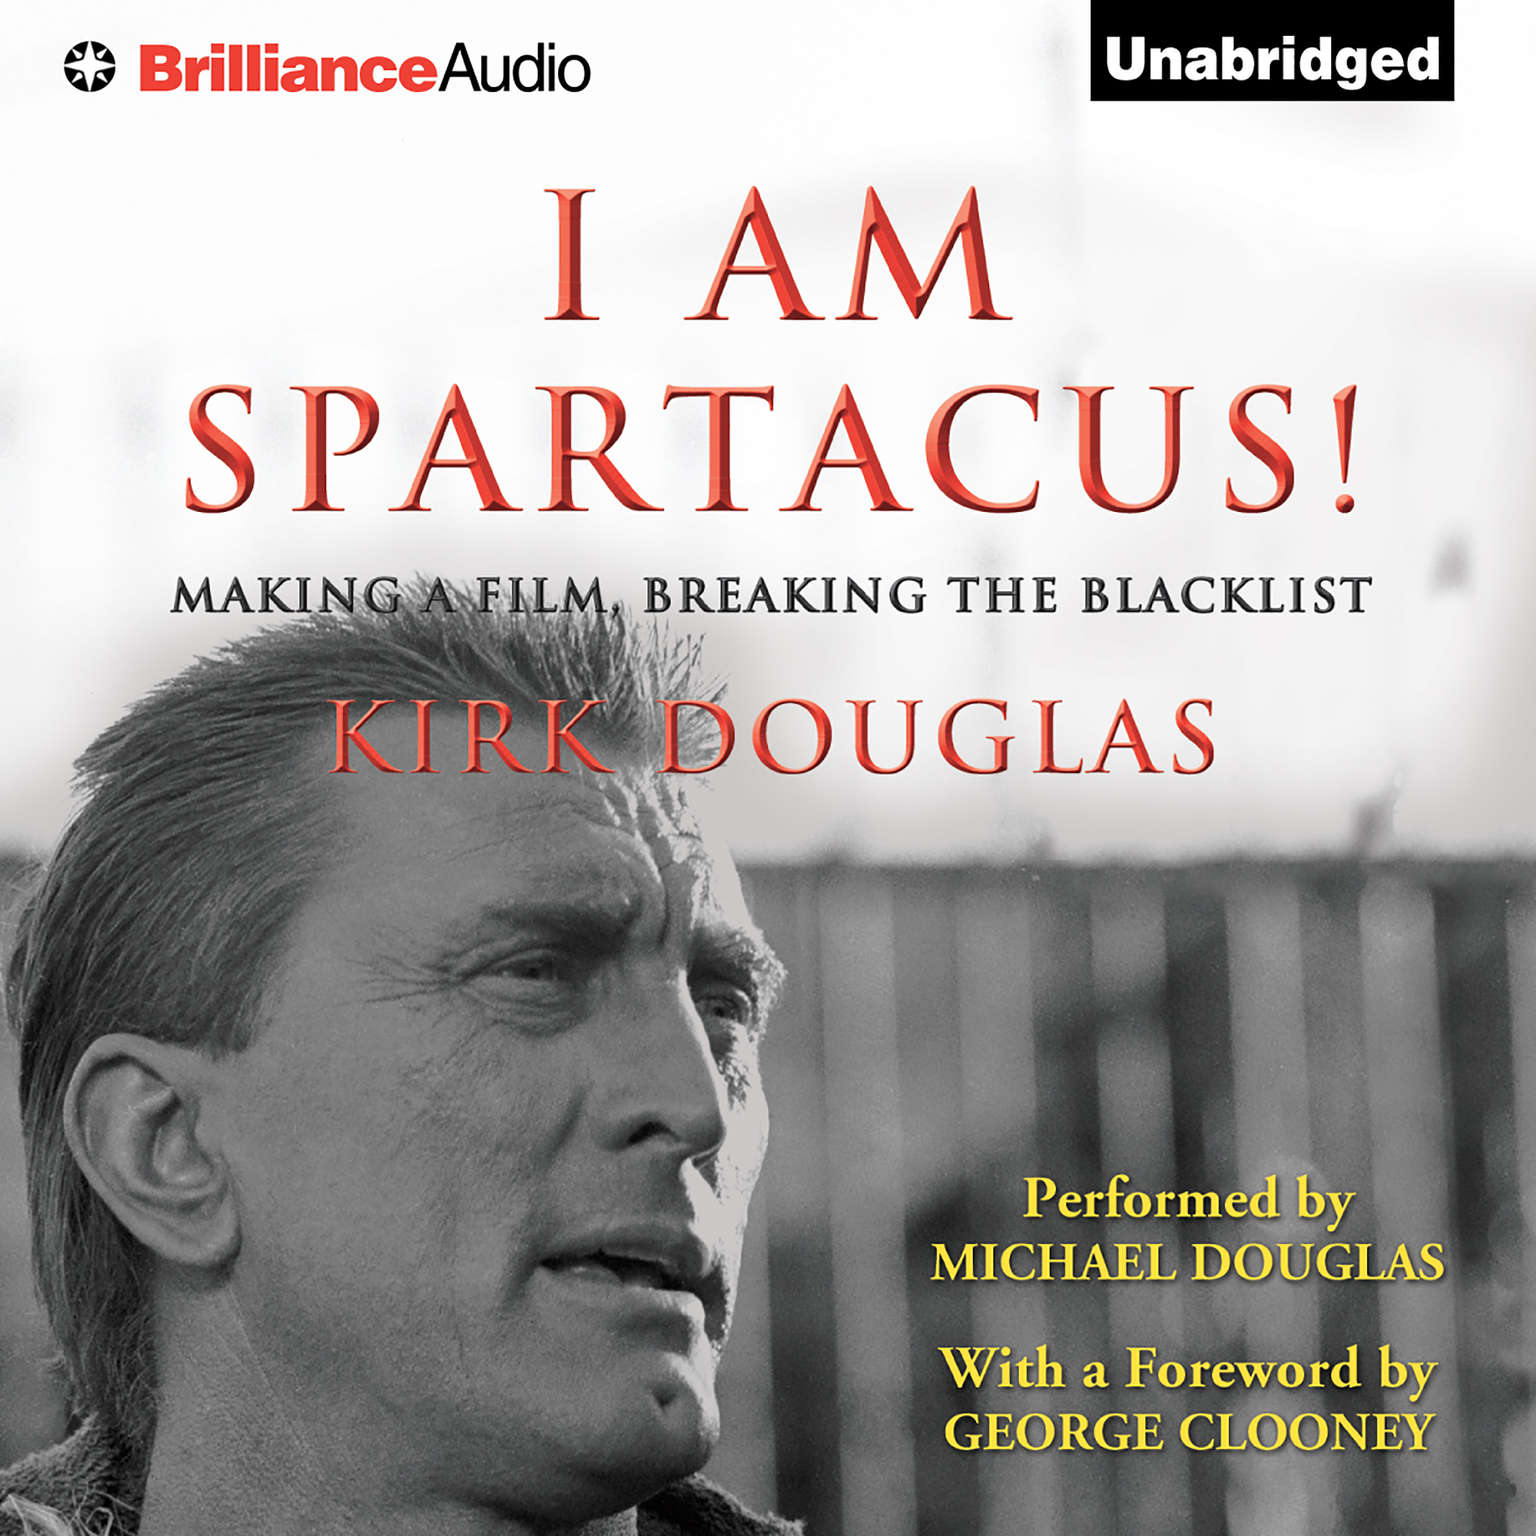 Printable I Am Spartacus!: Making a Film, Breaking the Blacklist Audiobook Cover Art